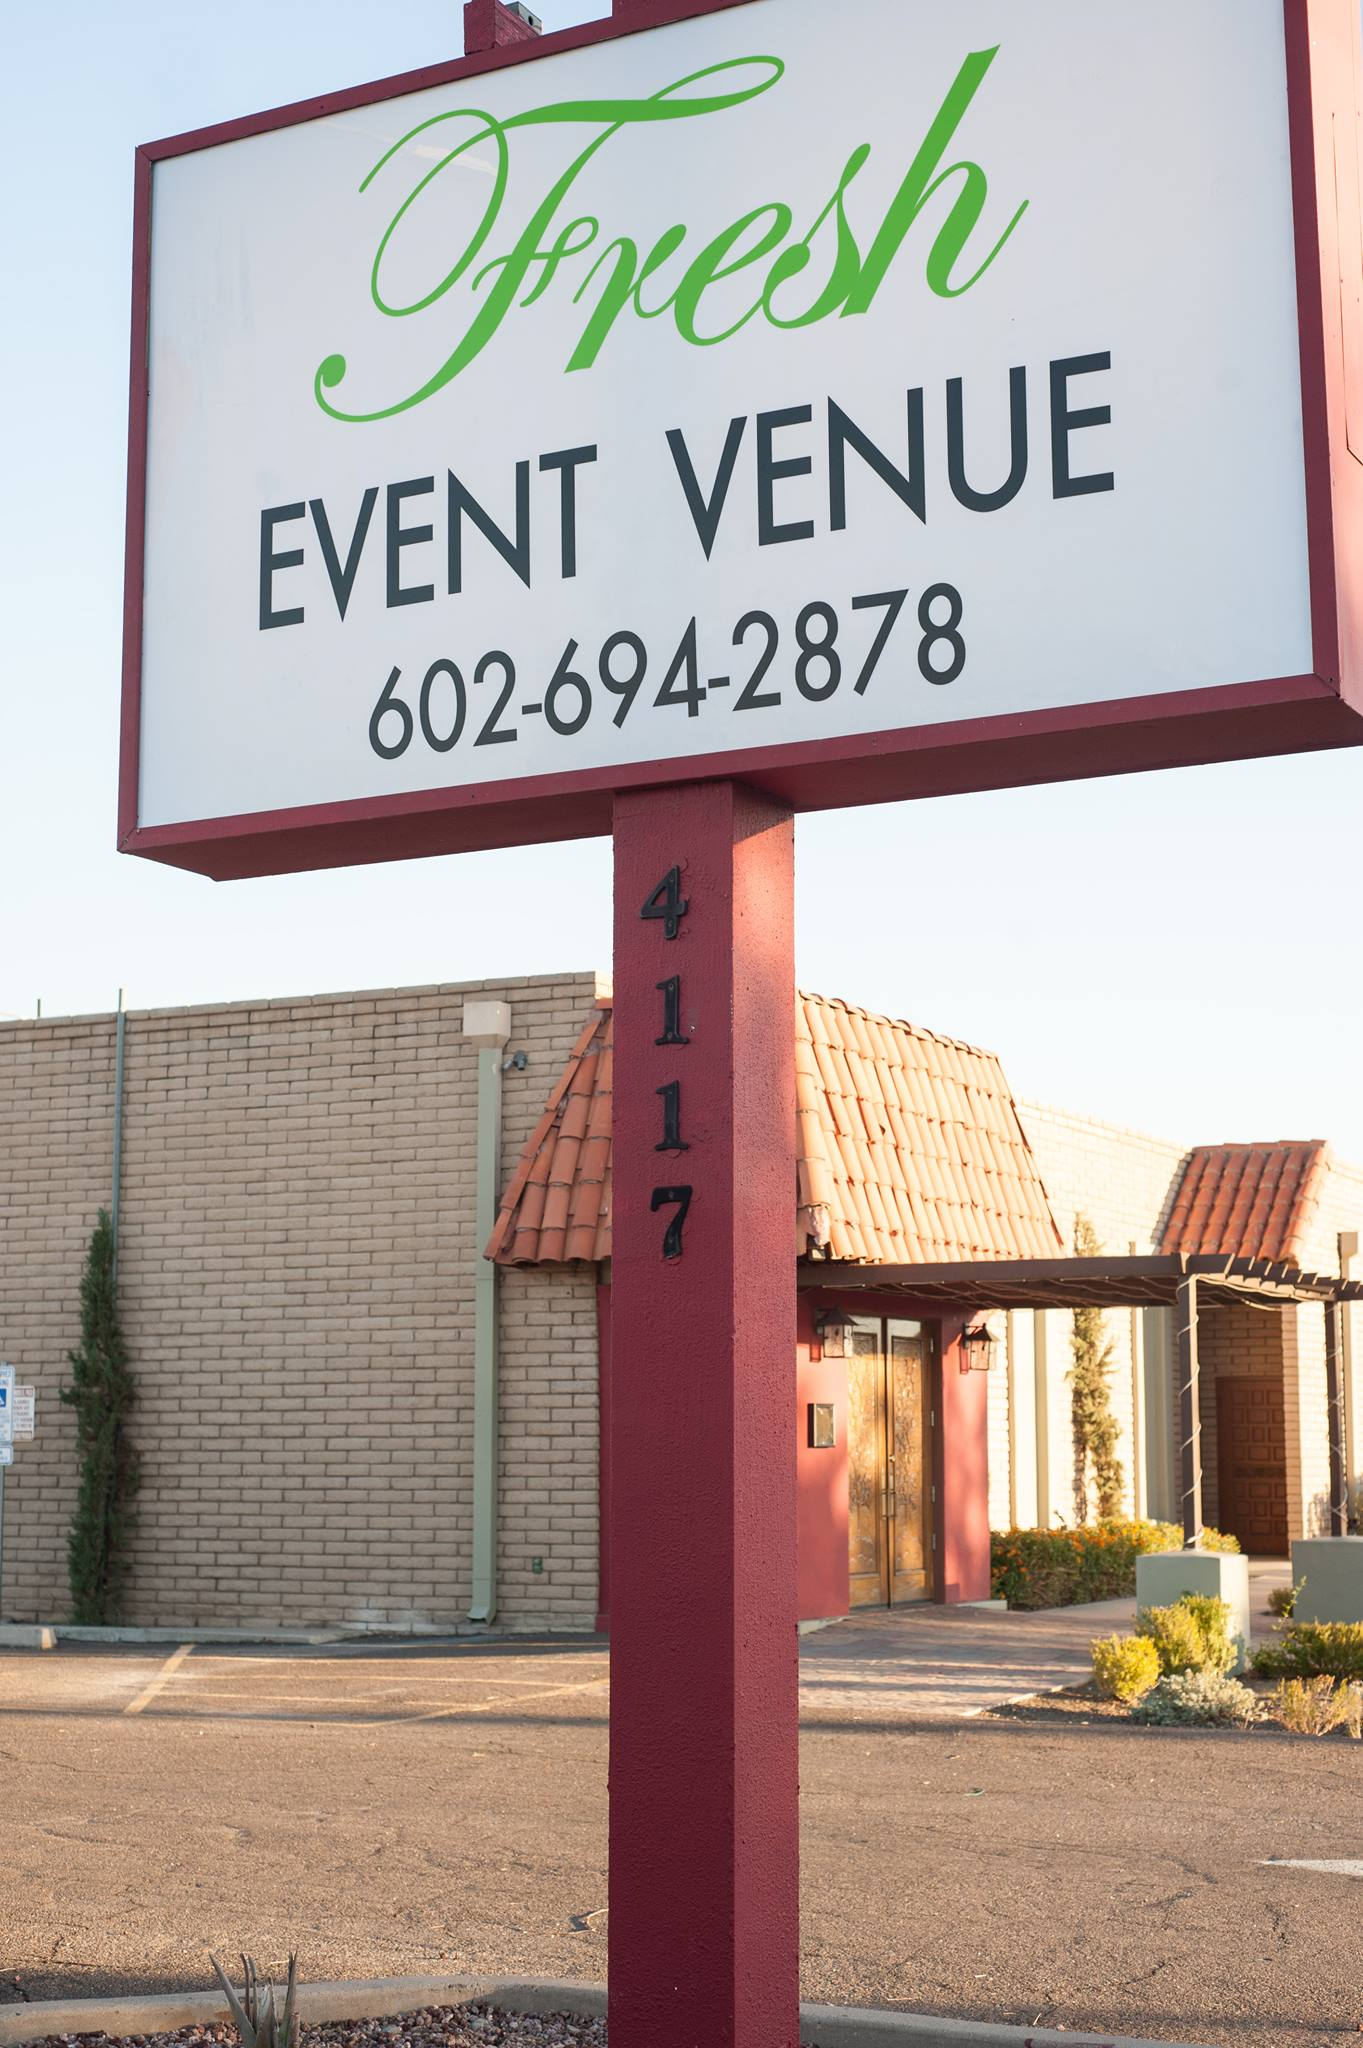 Fresh Event Venue